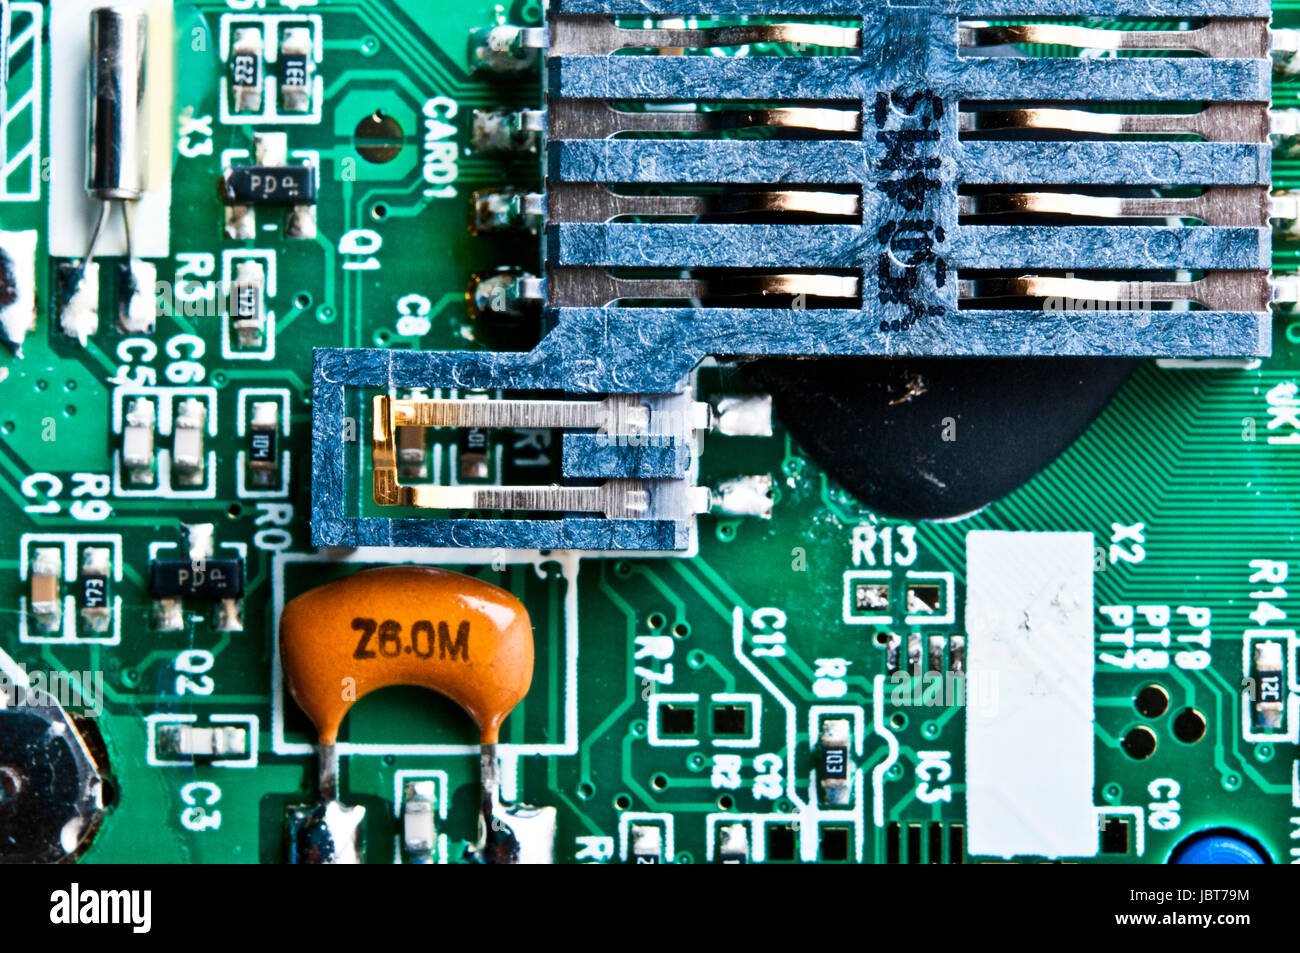 computer chip board macro detail - Stock Image